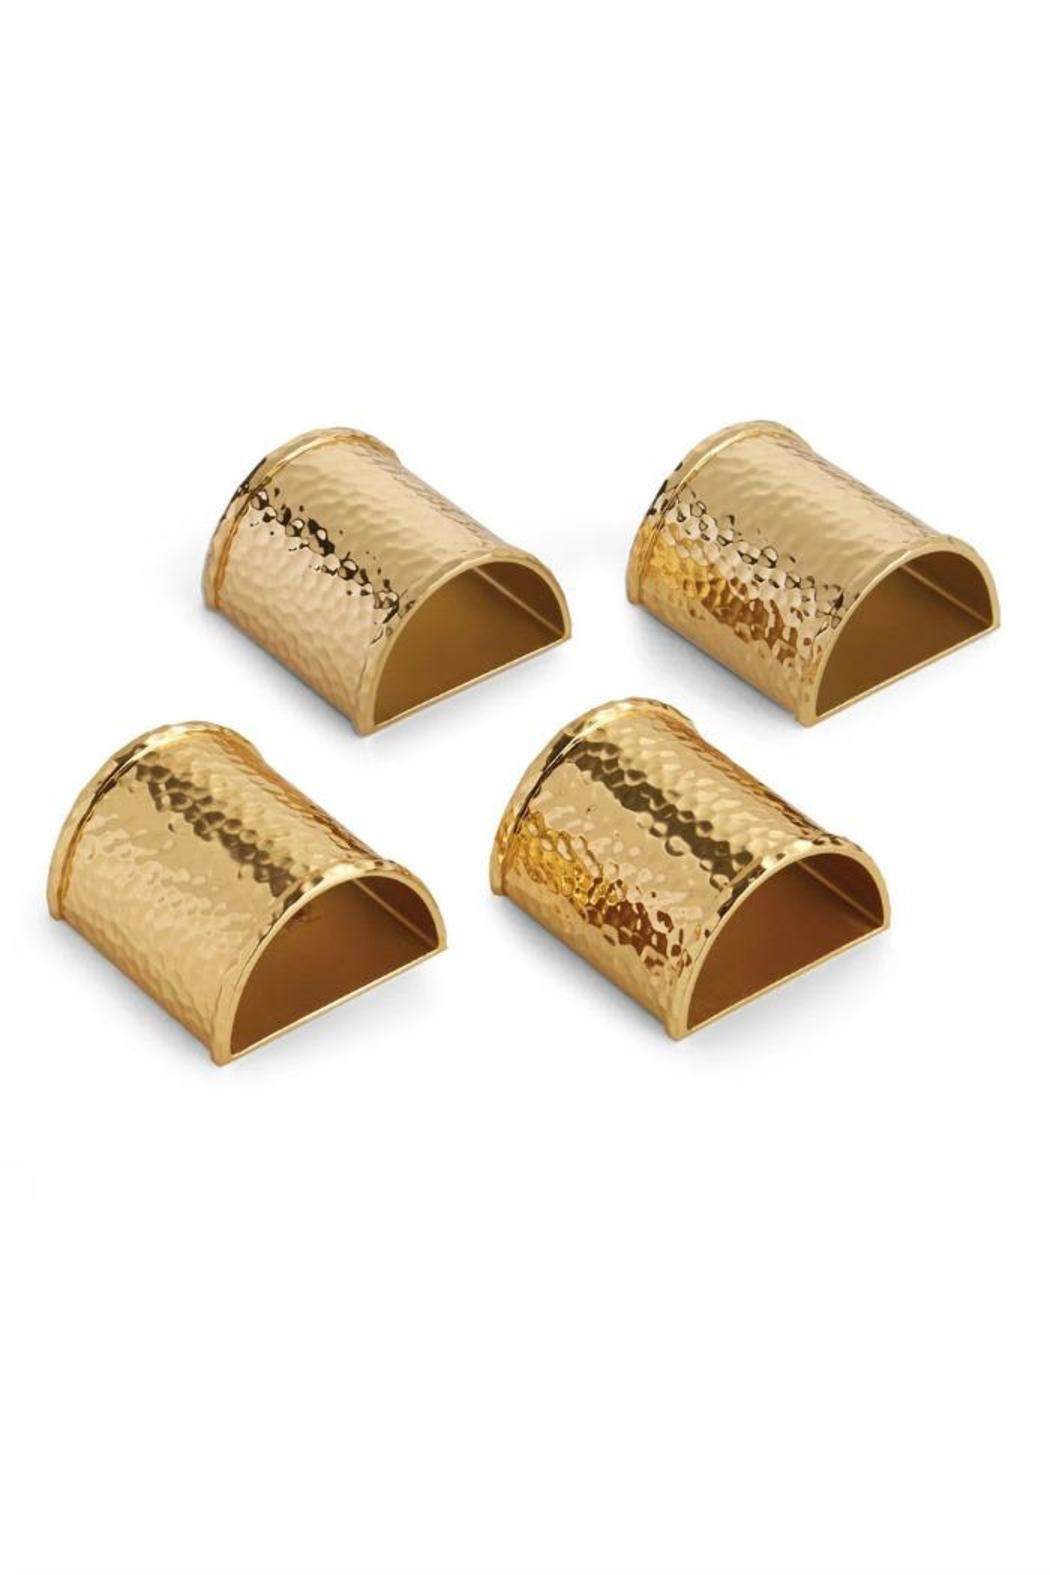 Michael Aram Napkin Rings | Decorating Your Thanksgiving Table | Apartment Decorating